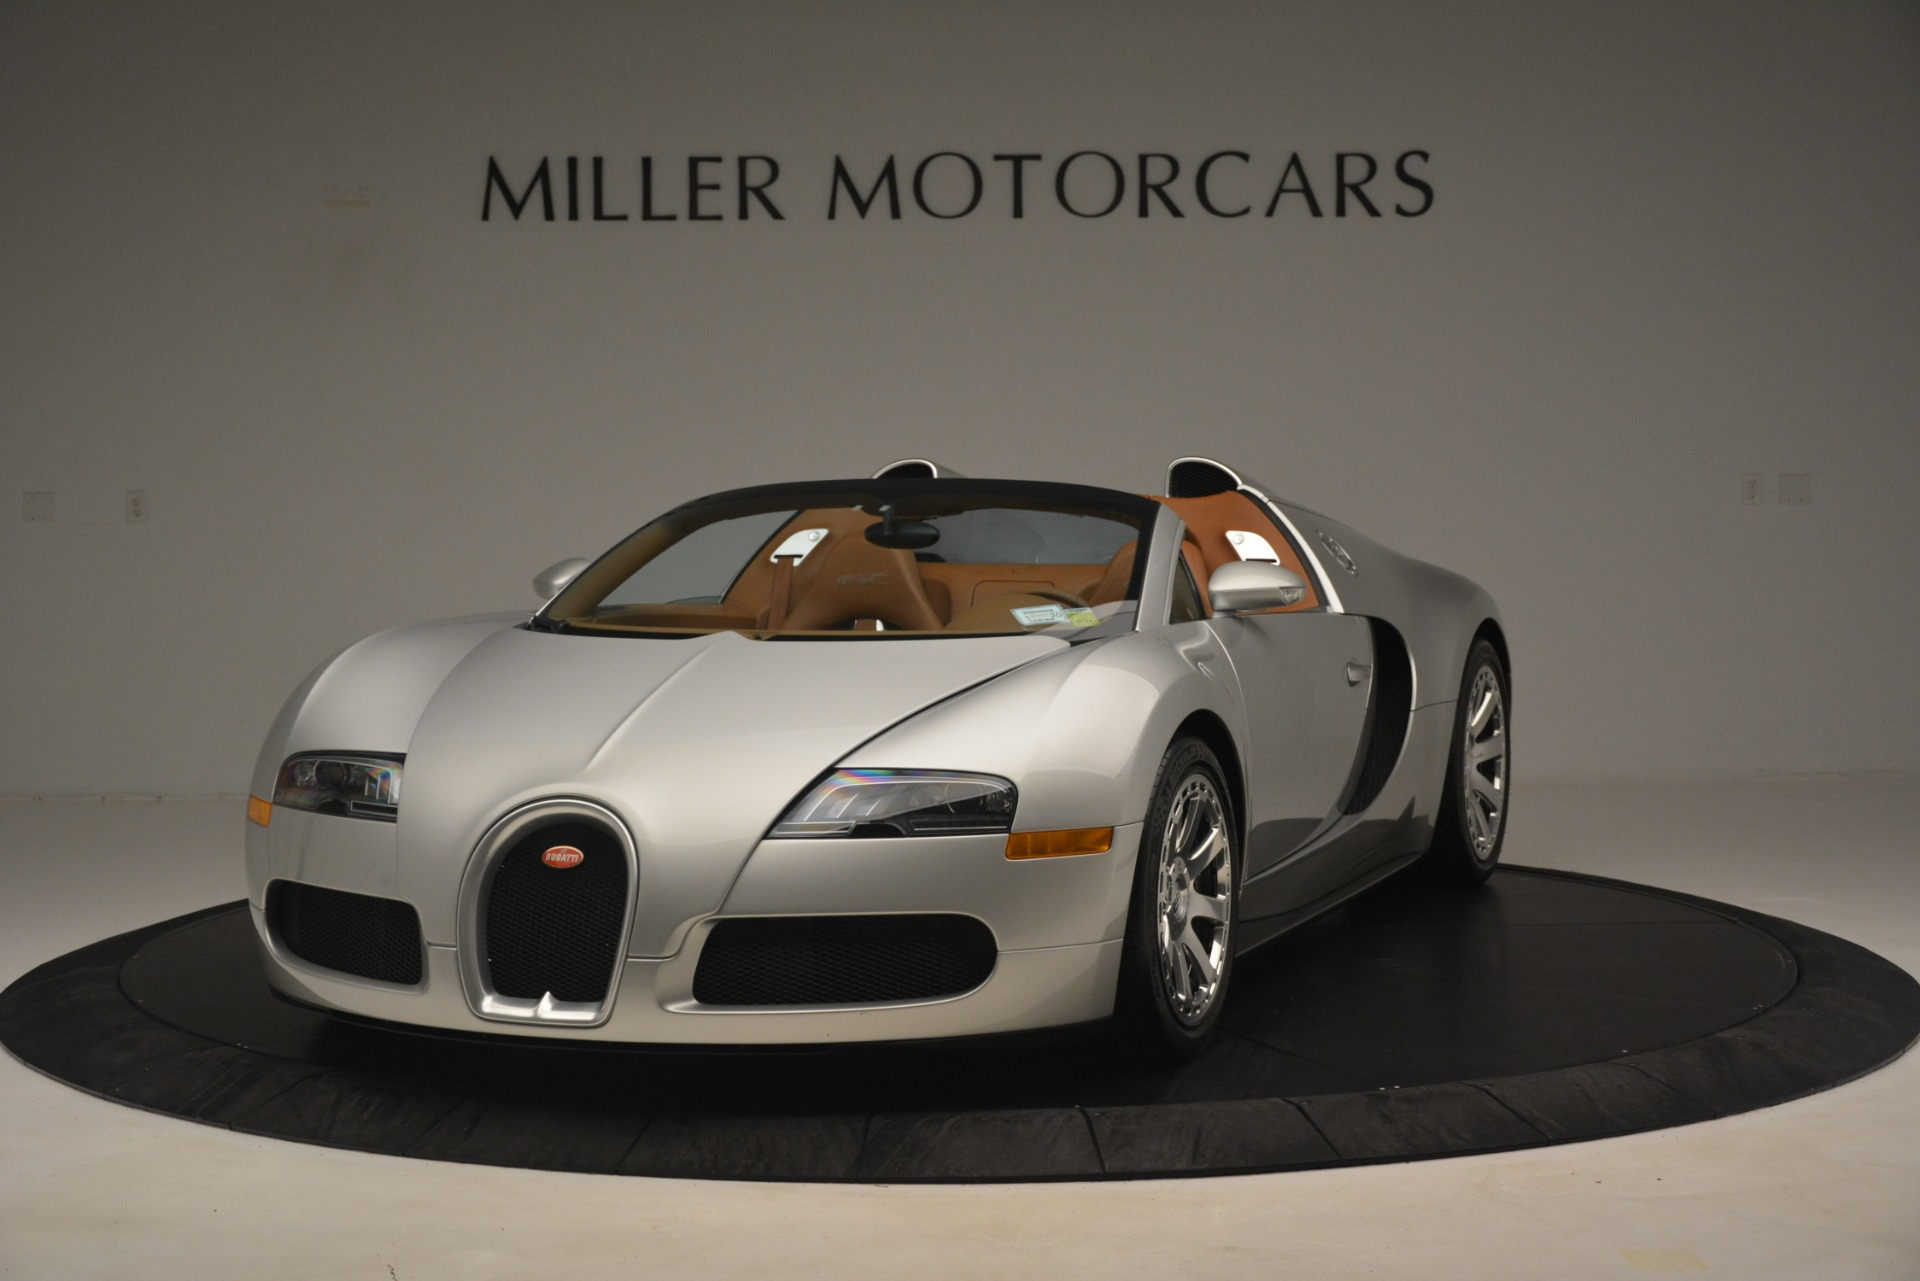 Used 2010 Bugatti Veyron 16.4 Grand Sport for sale Sold at Aston Martin of Greenwich in Greenwich CT 06830 1